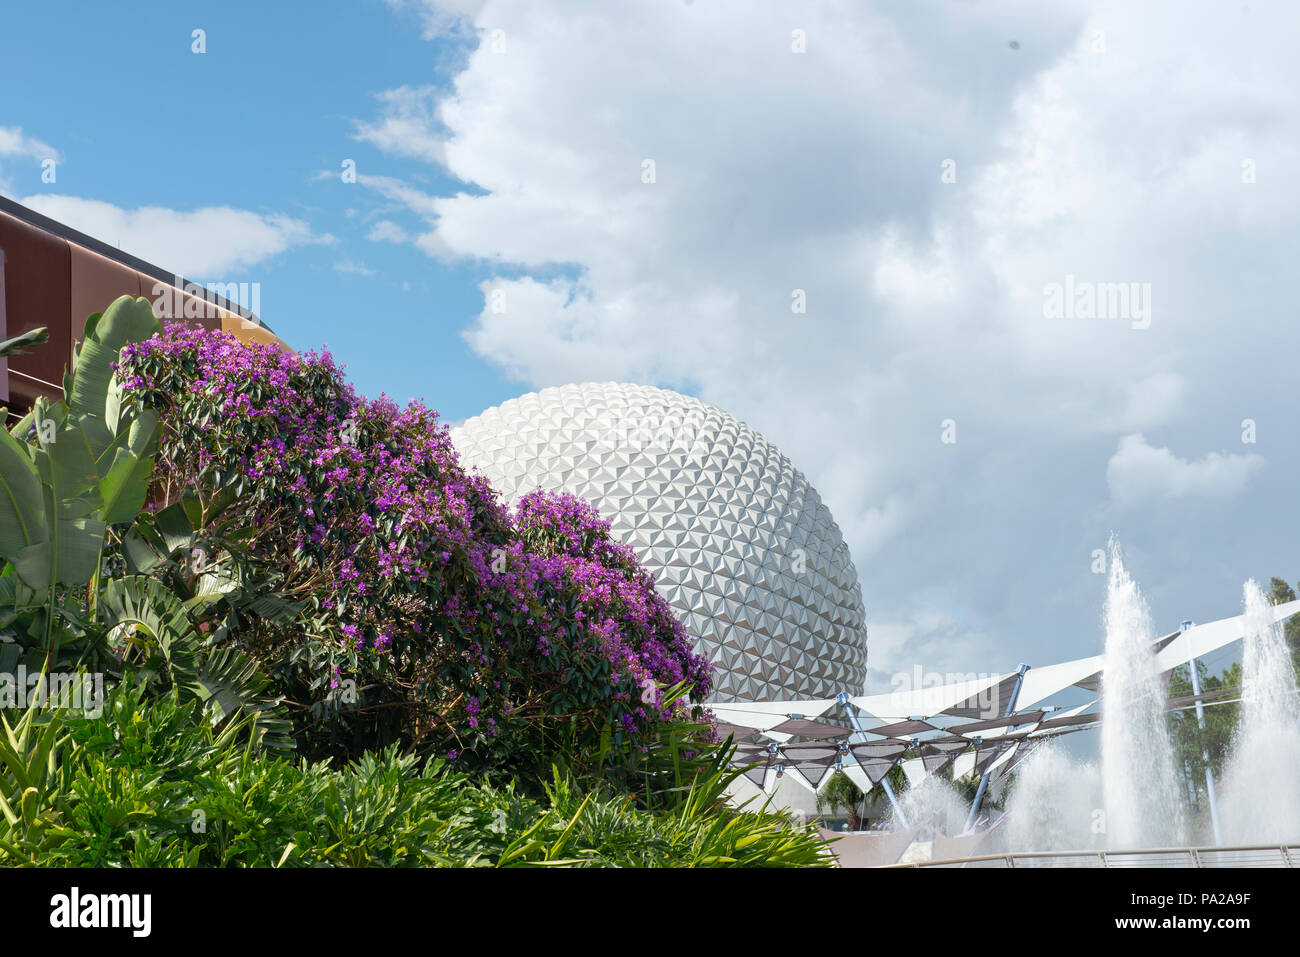 Epcot Center Spaceship Earth, sometimes called The Giant Golf Ball, is seen from an unusual angle, with room for text in the blue sky. Water fountains - Stock Image